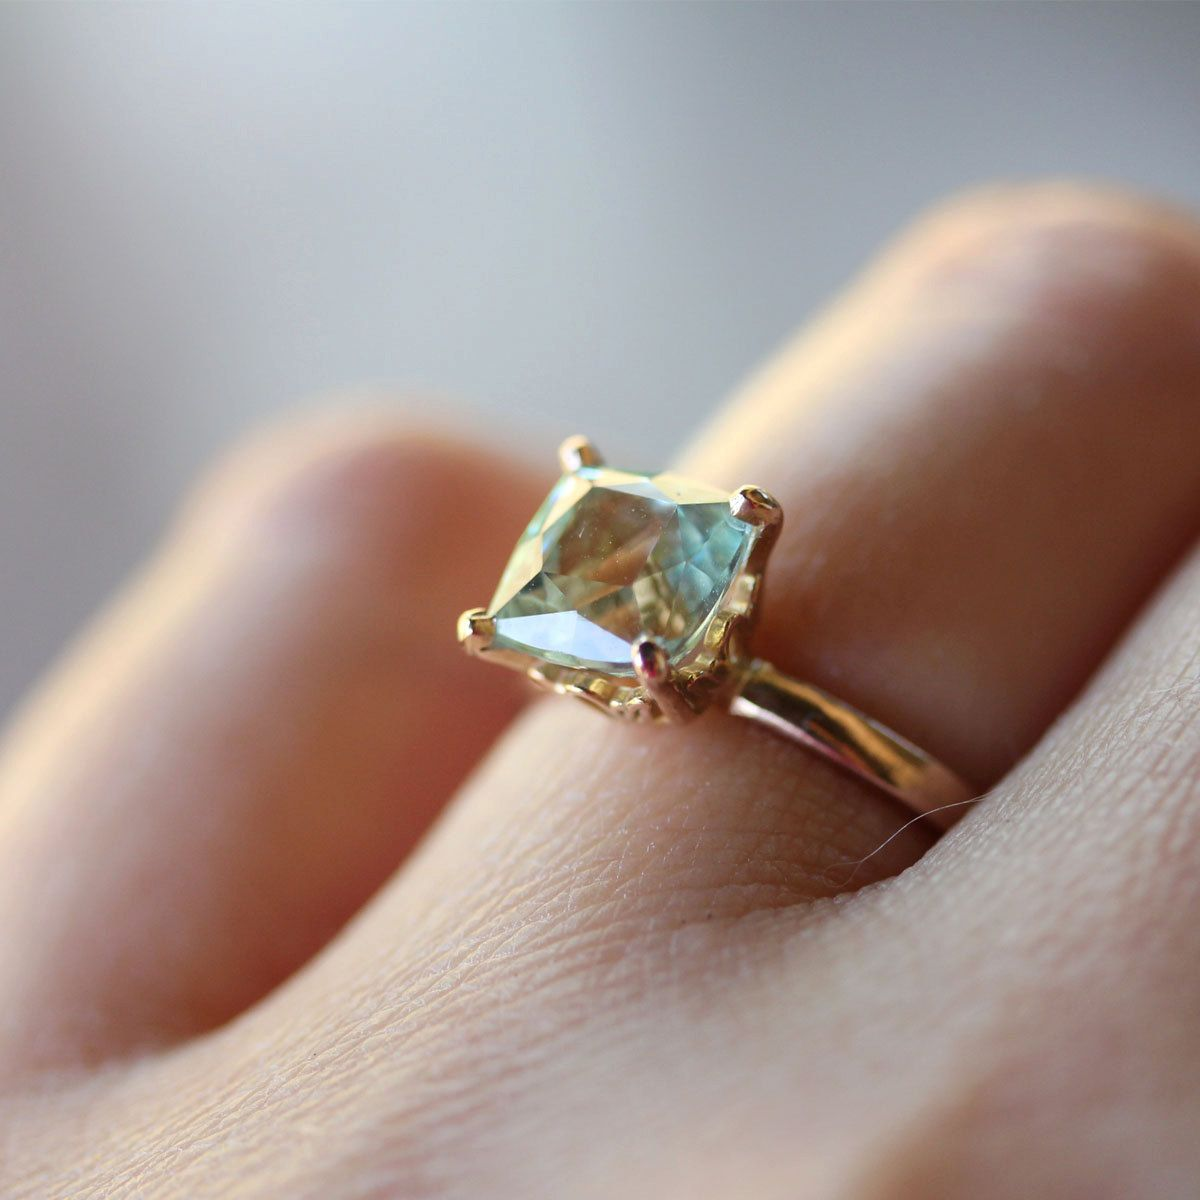 Aquamarine RIng In 14K Rose Gold Engagement Ring - Ready To Ship. $350.00, via Etsy.